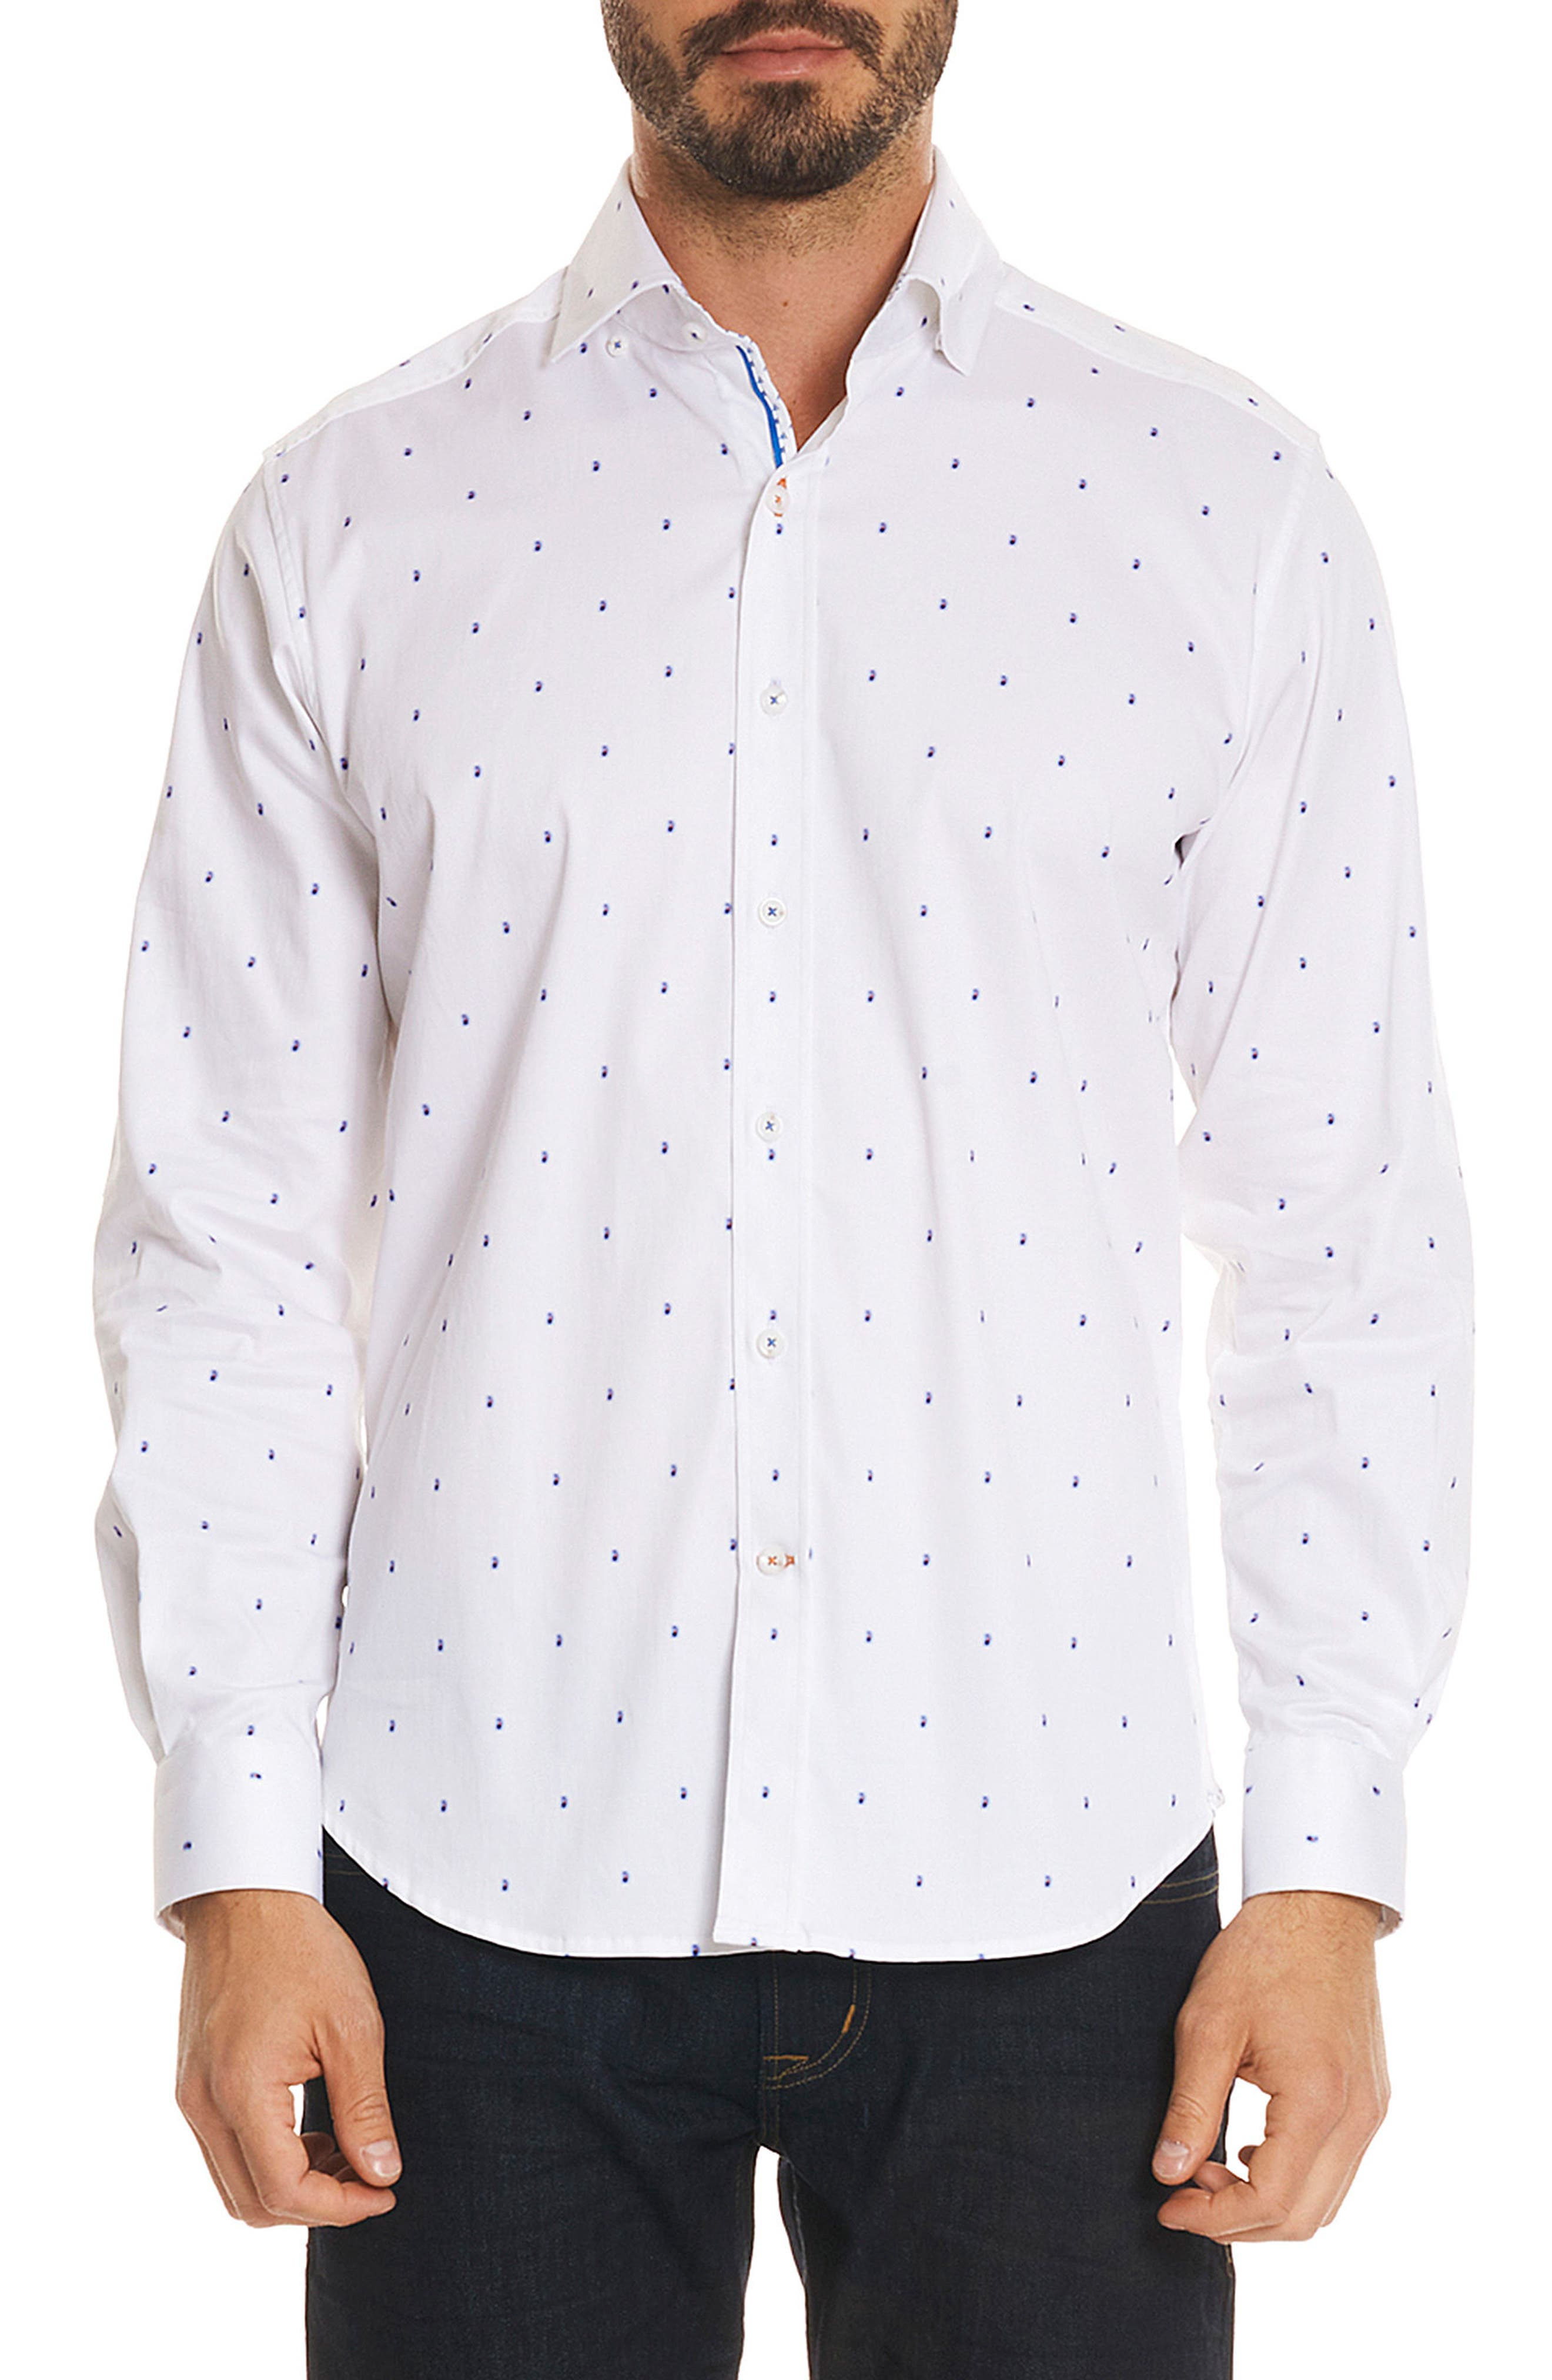 Mack Tailored Fit Sport Shirt,                         Main,                         color, White